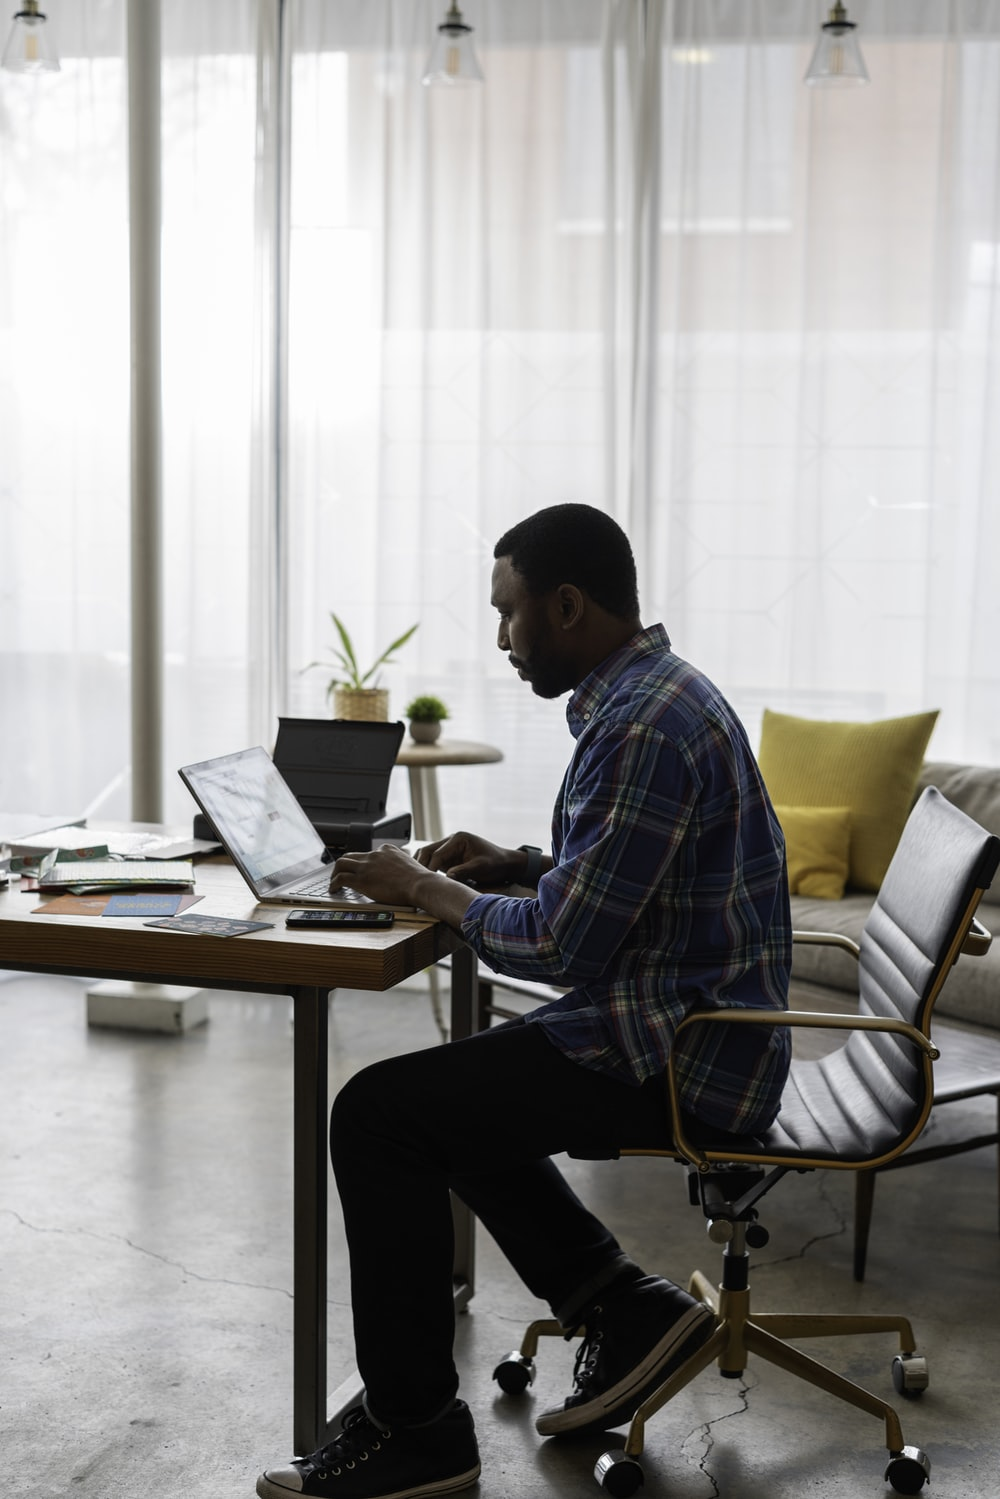 man in blue and white plaid dress shirt sitting on chair using laptop computer